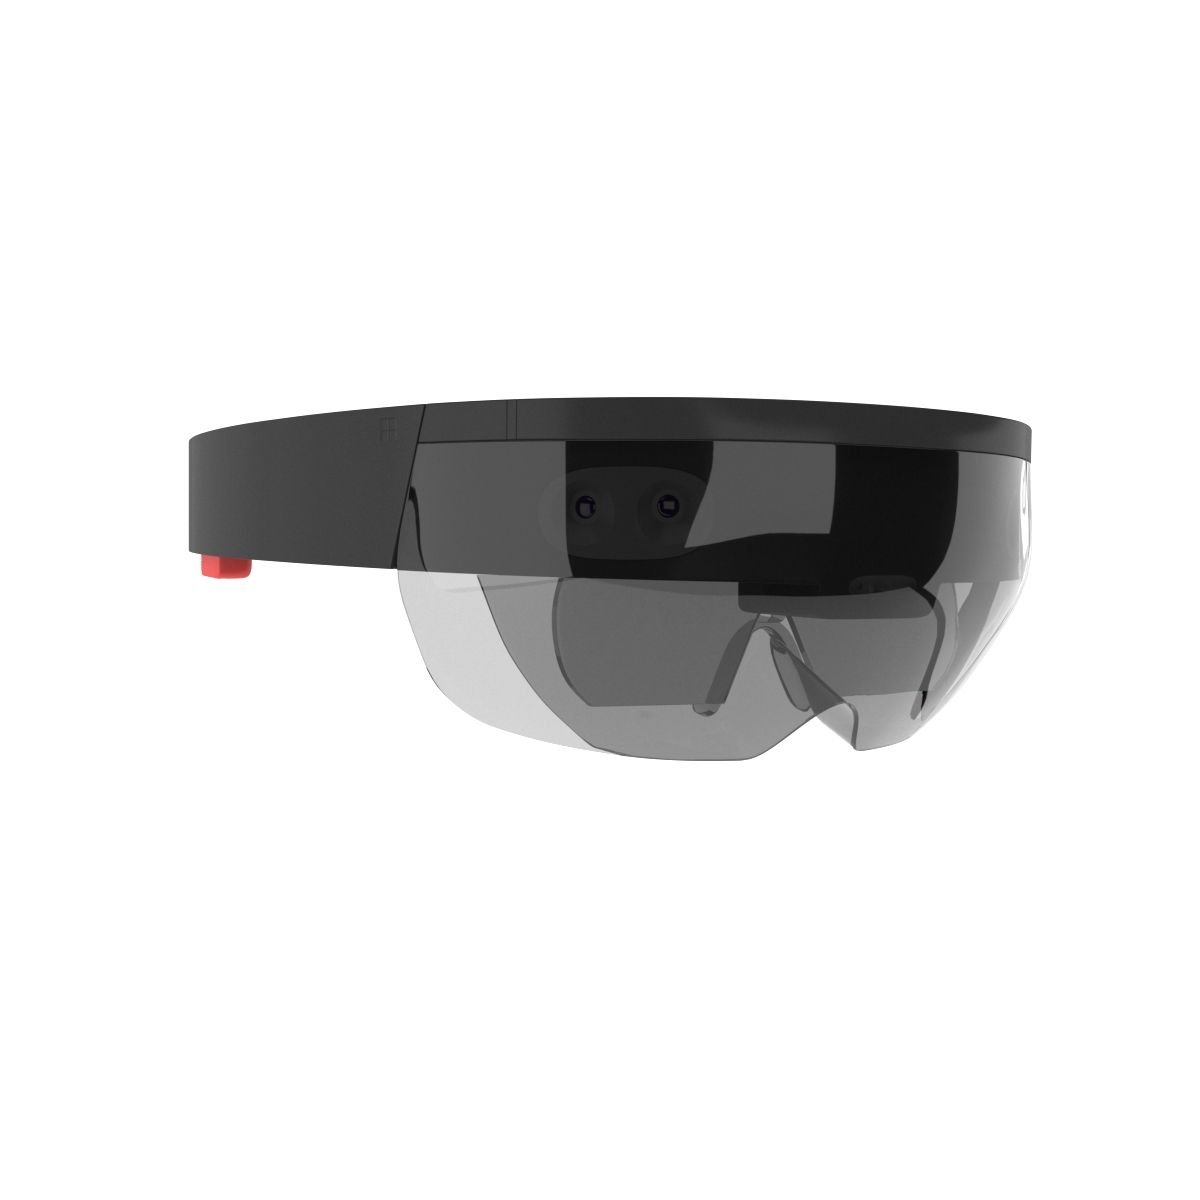 Microsoft Hololens #Microsoft, #Hololens | Graphic Design Projects